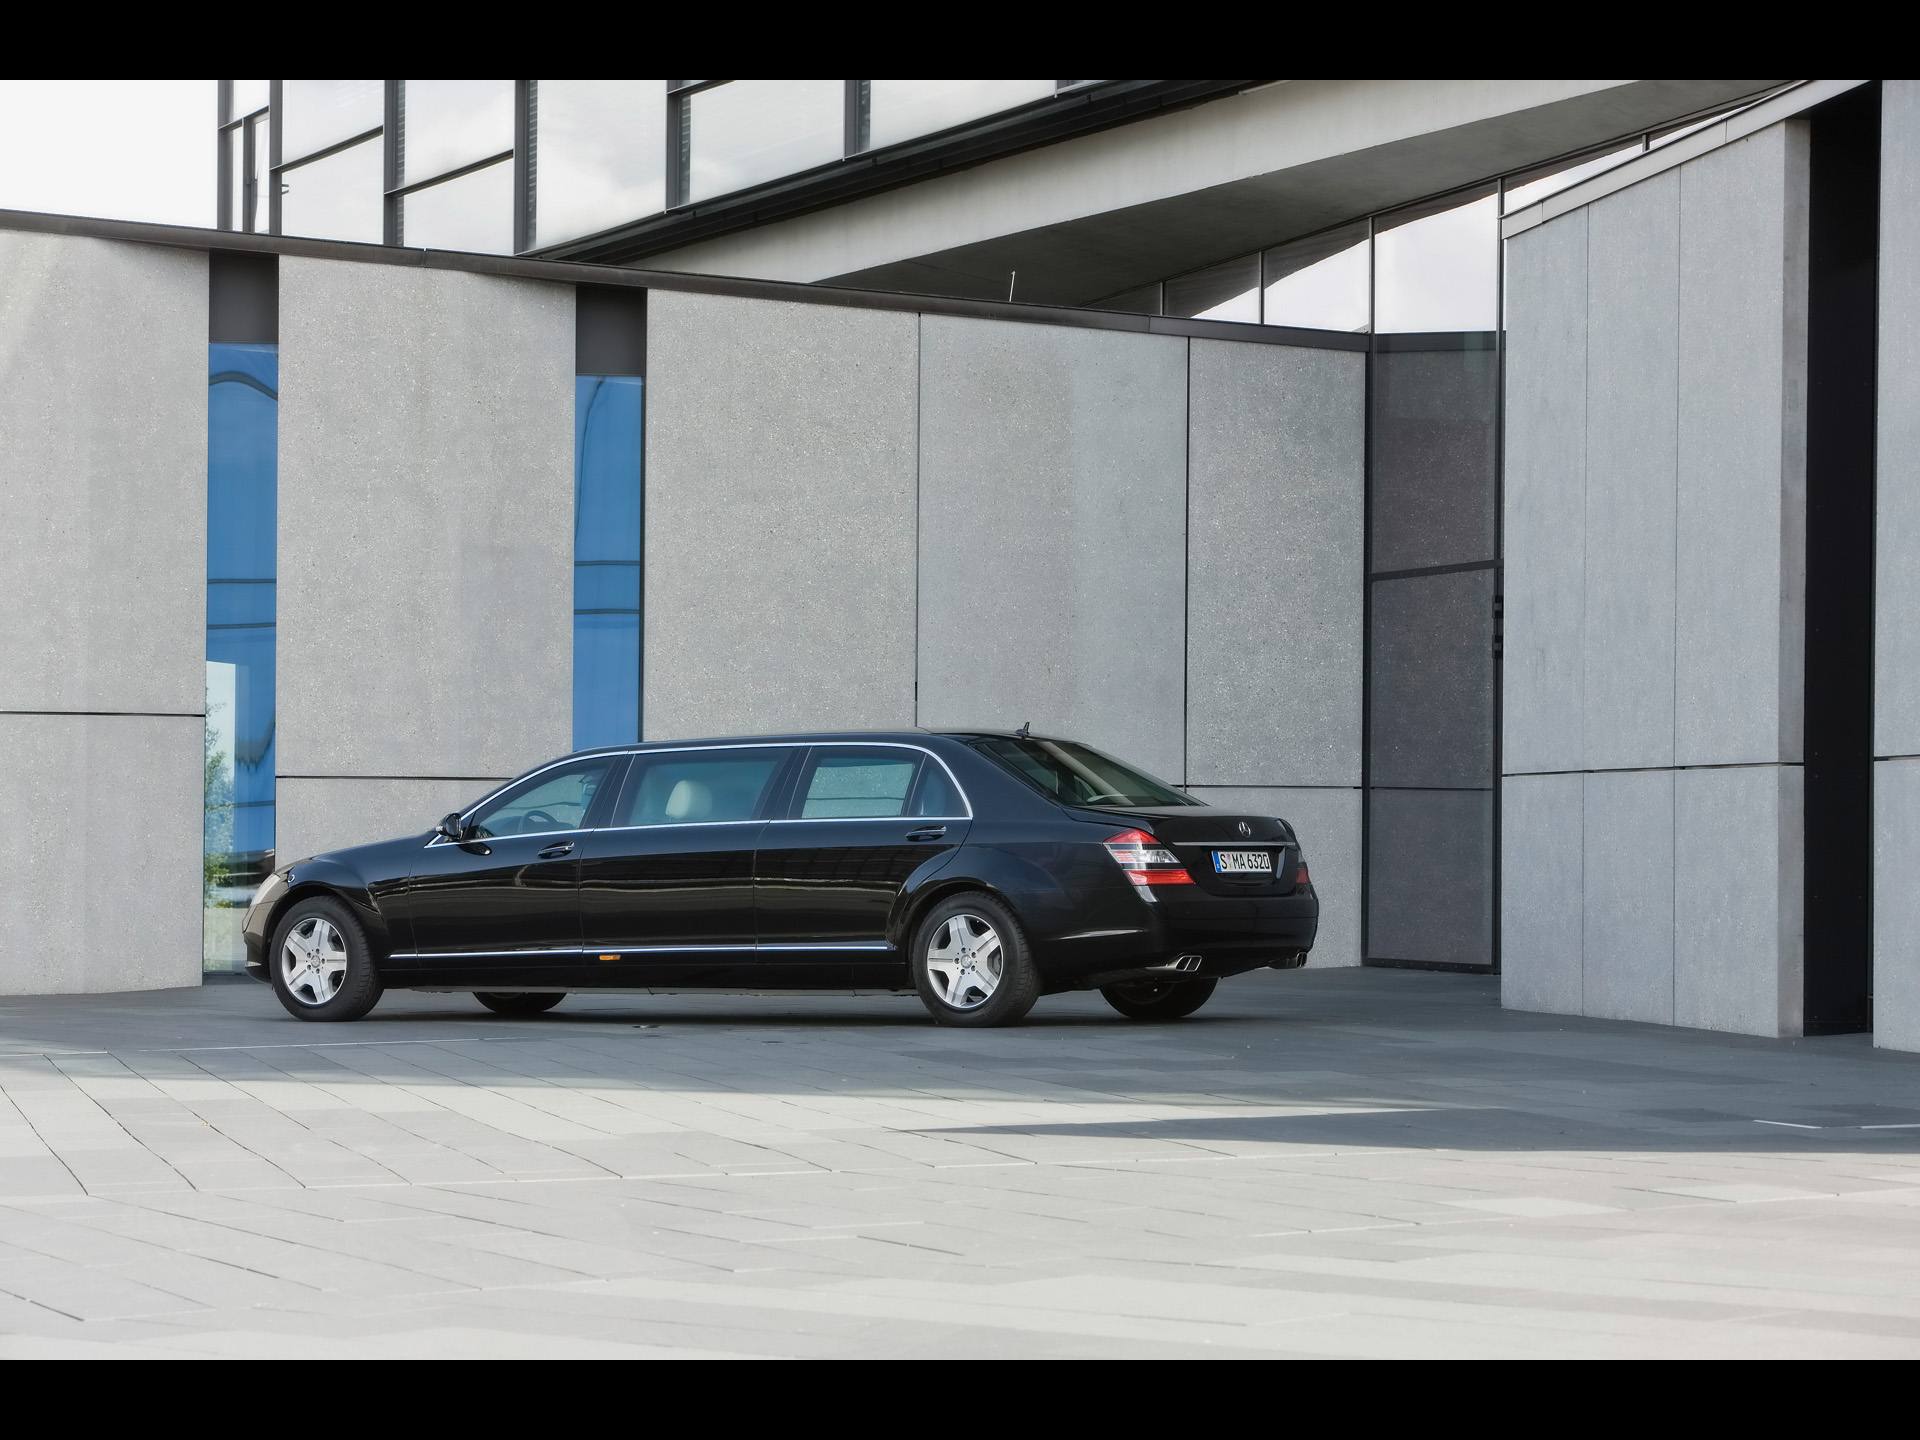 Mercedes-Benz S 600 Pullman Guard Limousine photo 58445